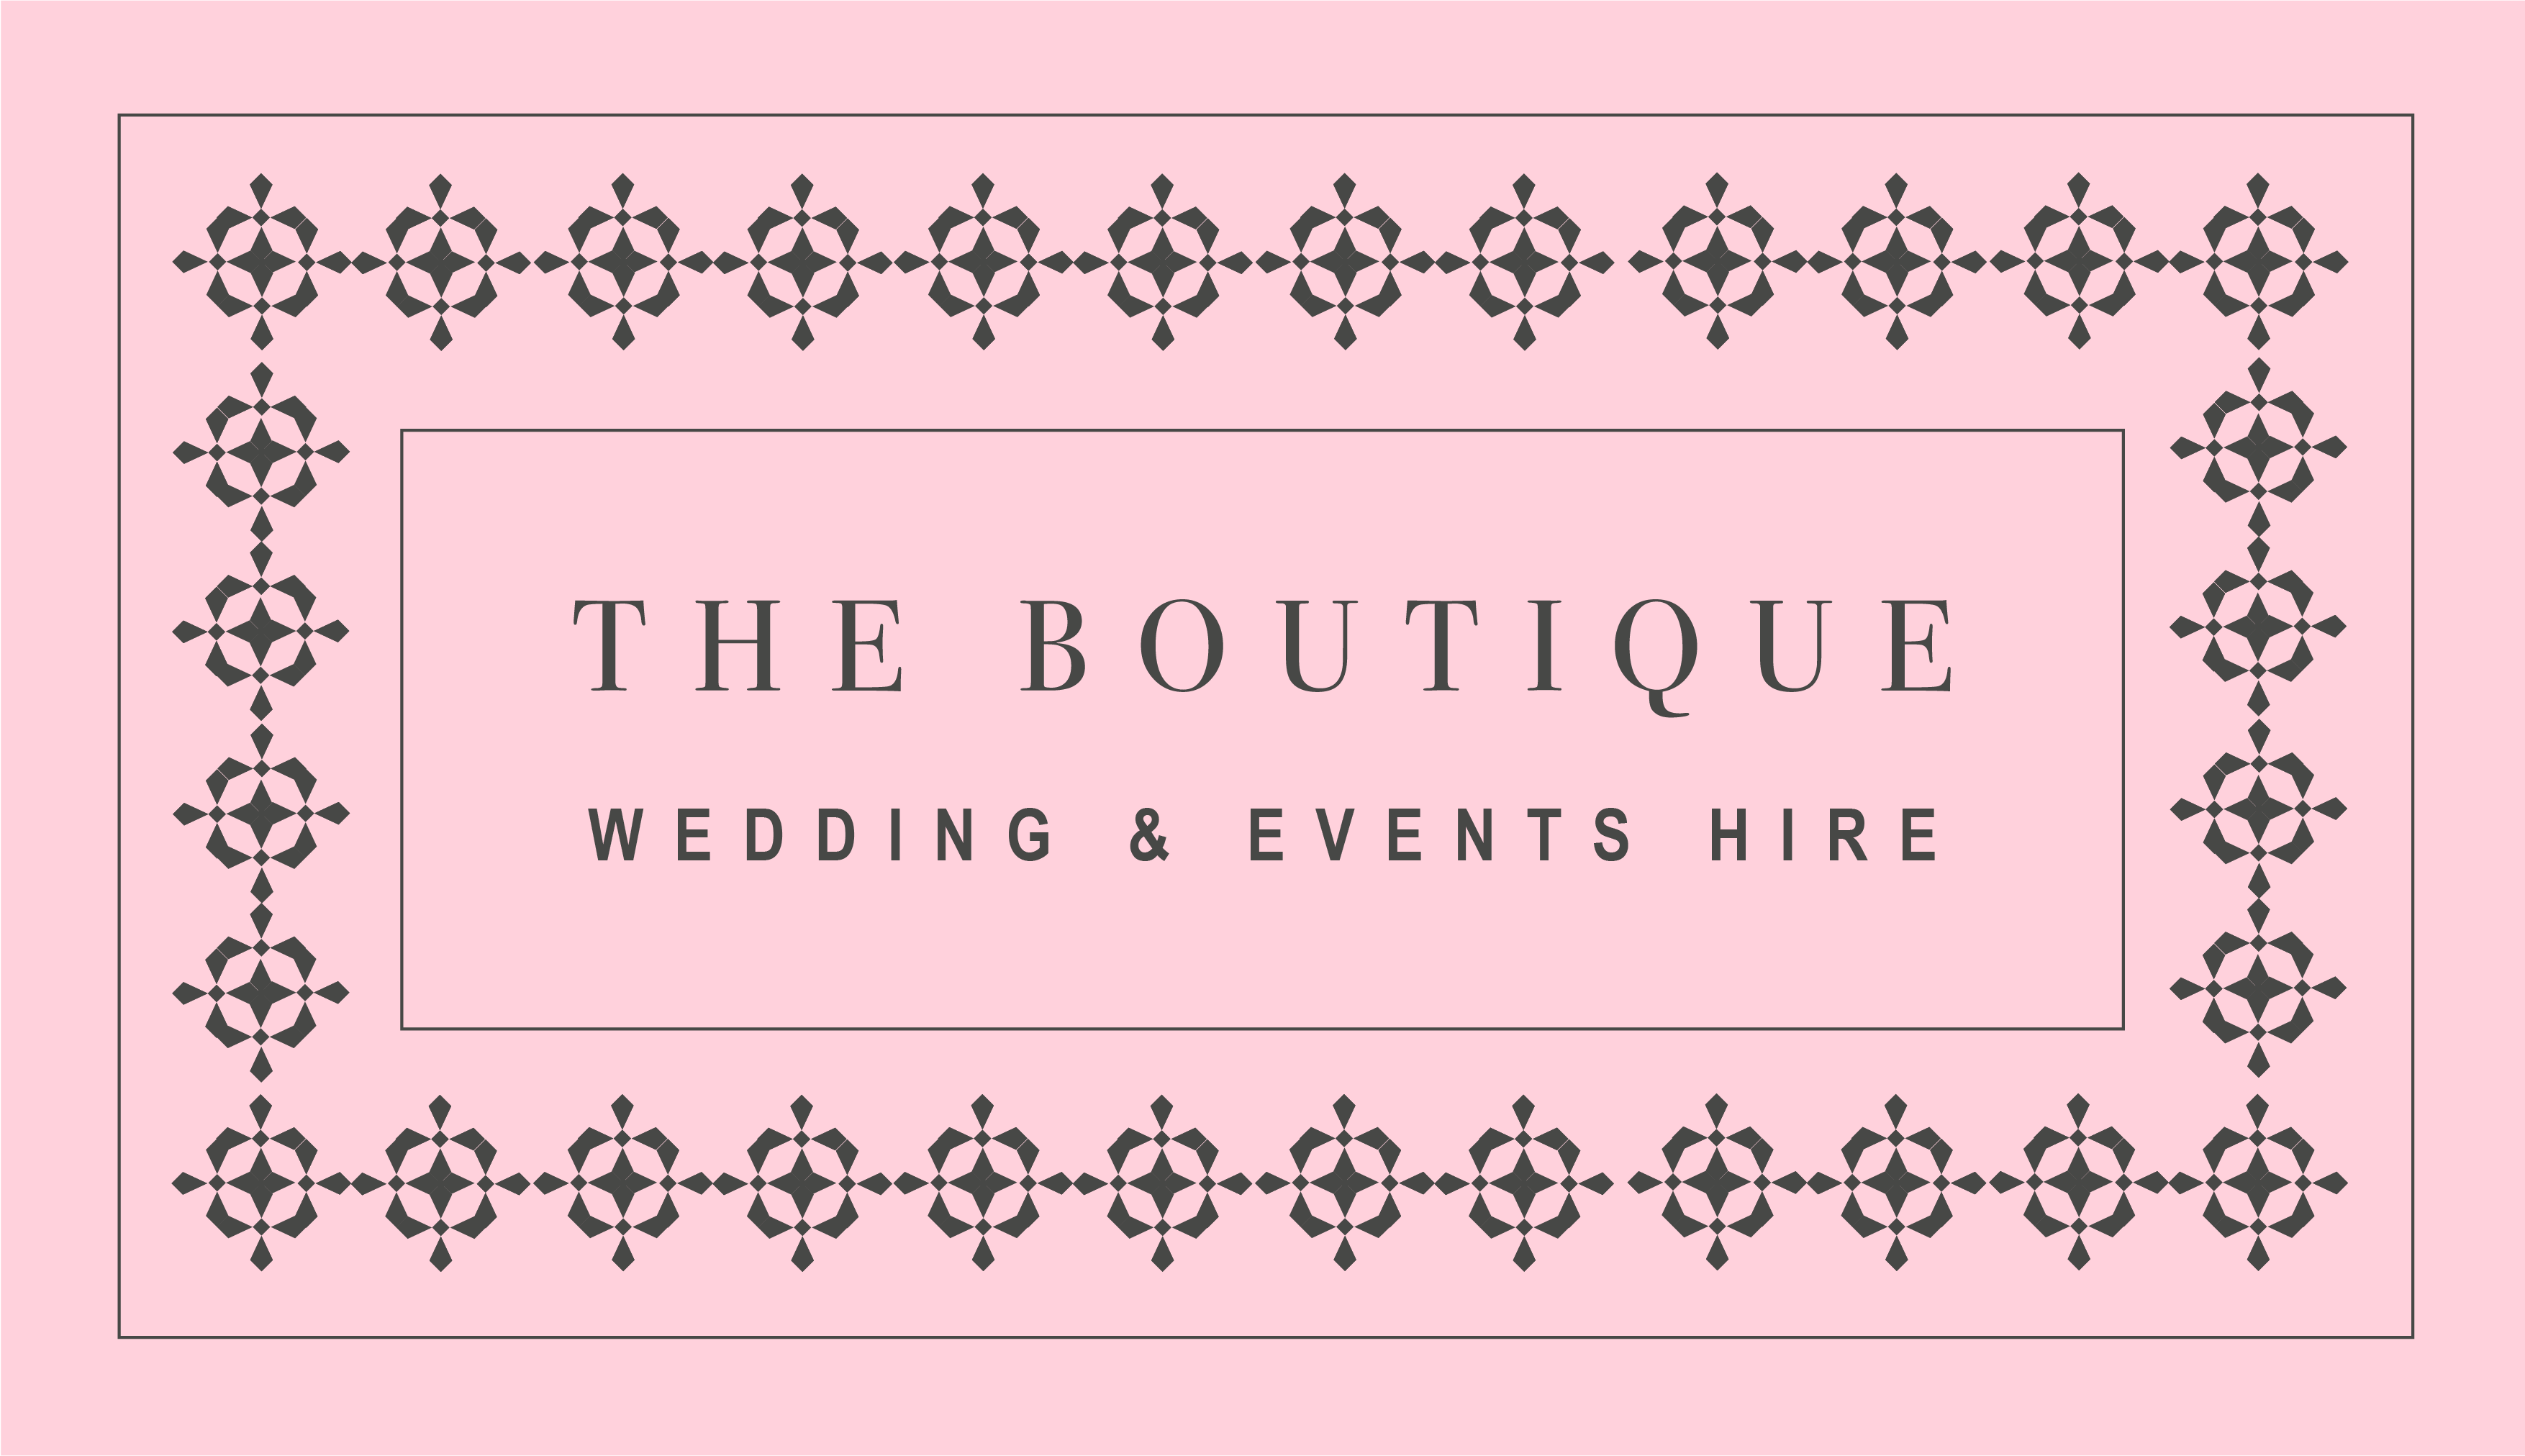 The Boutique Wedding & Events Hire